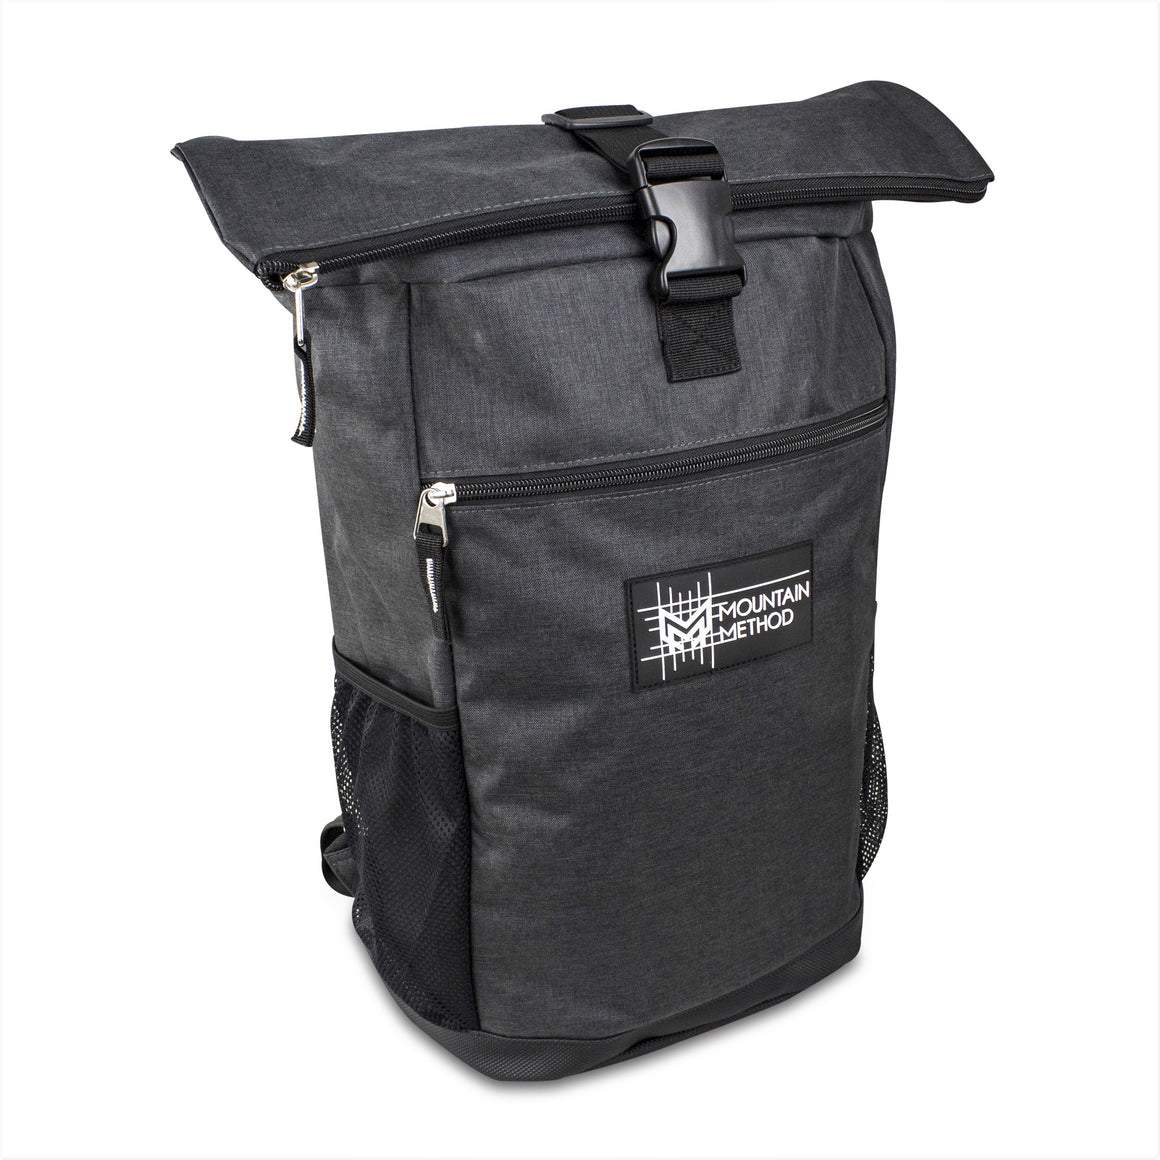 Roll Top backpack - Charcoal